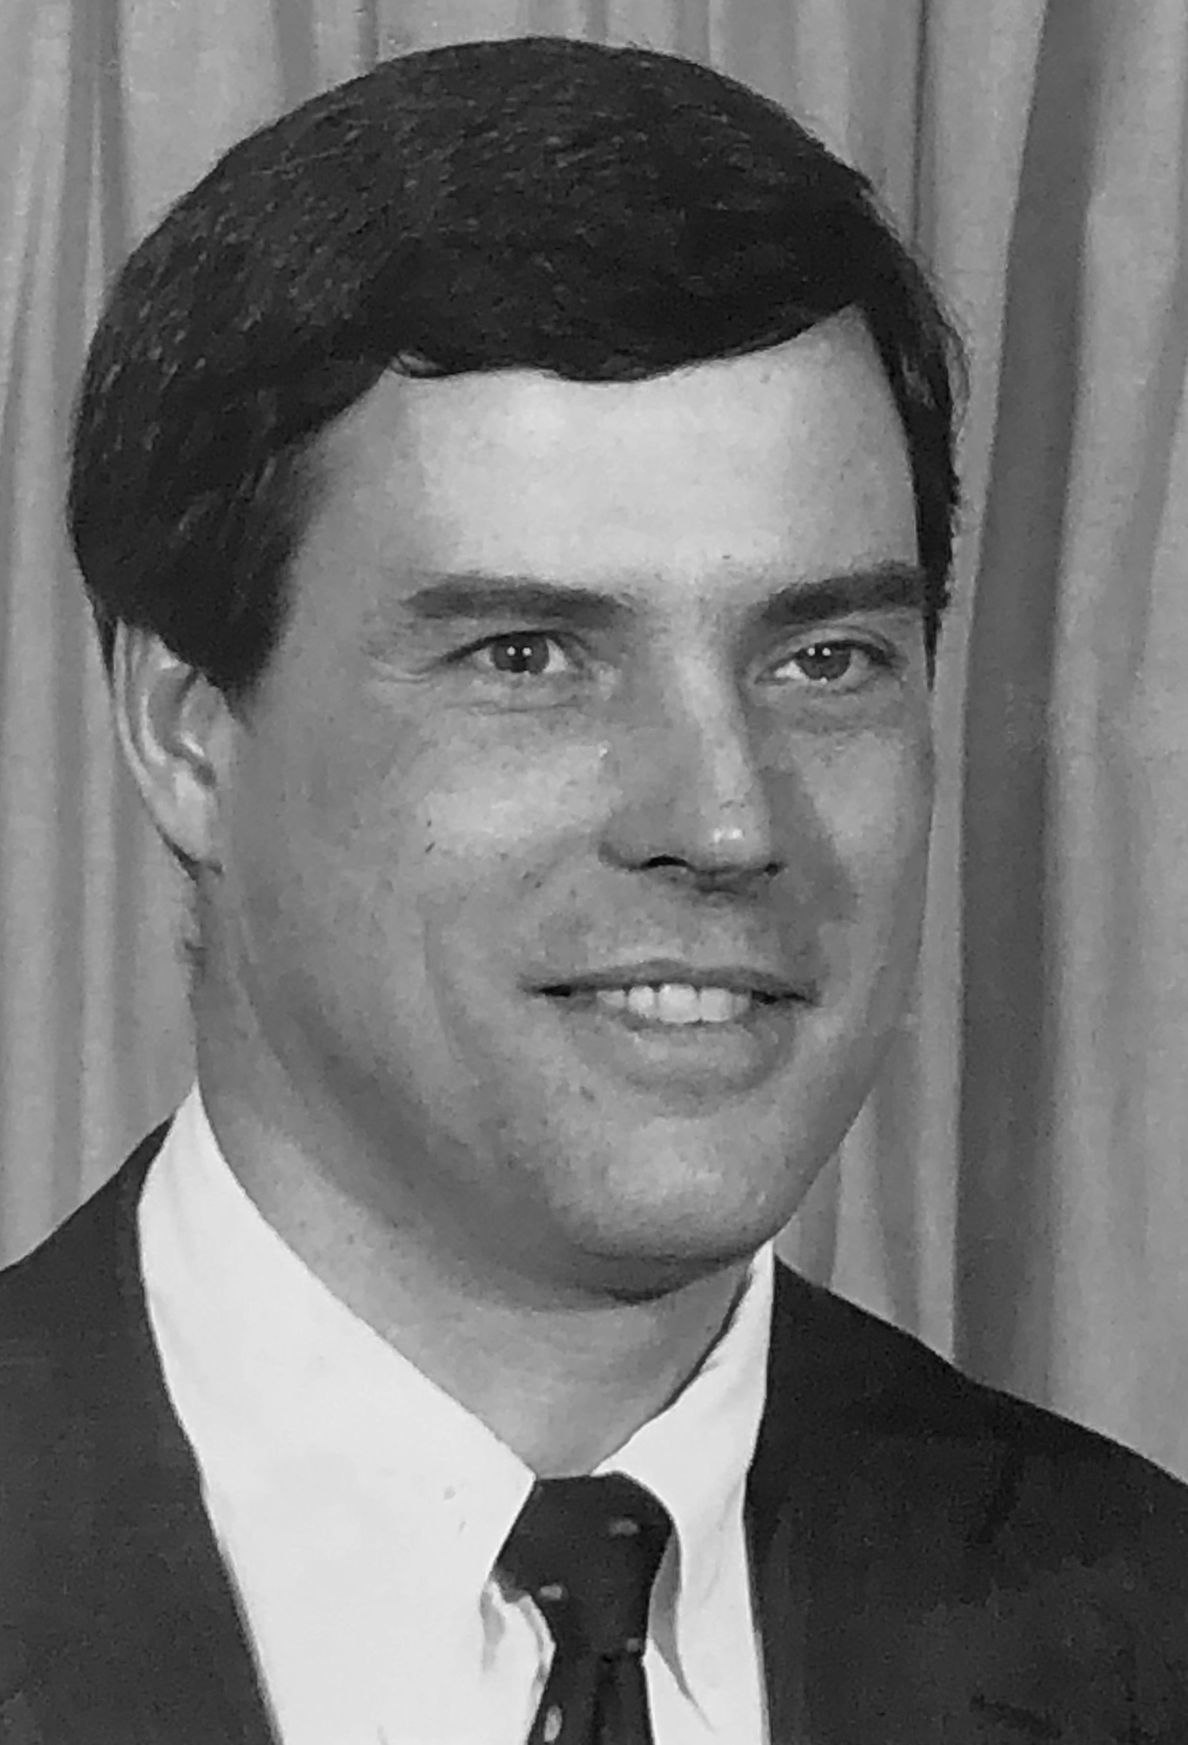 Robert P. McCulloch 1990 primary election